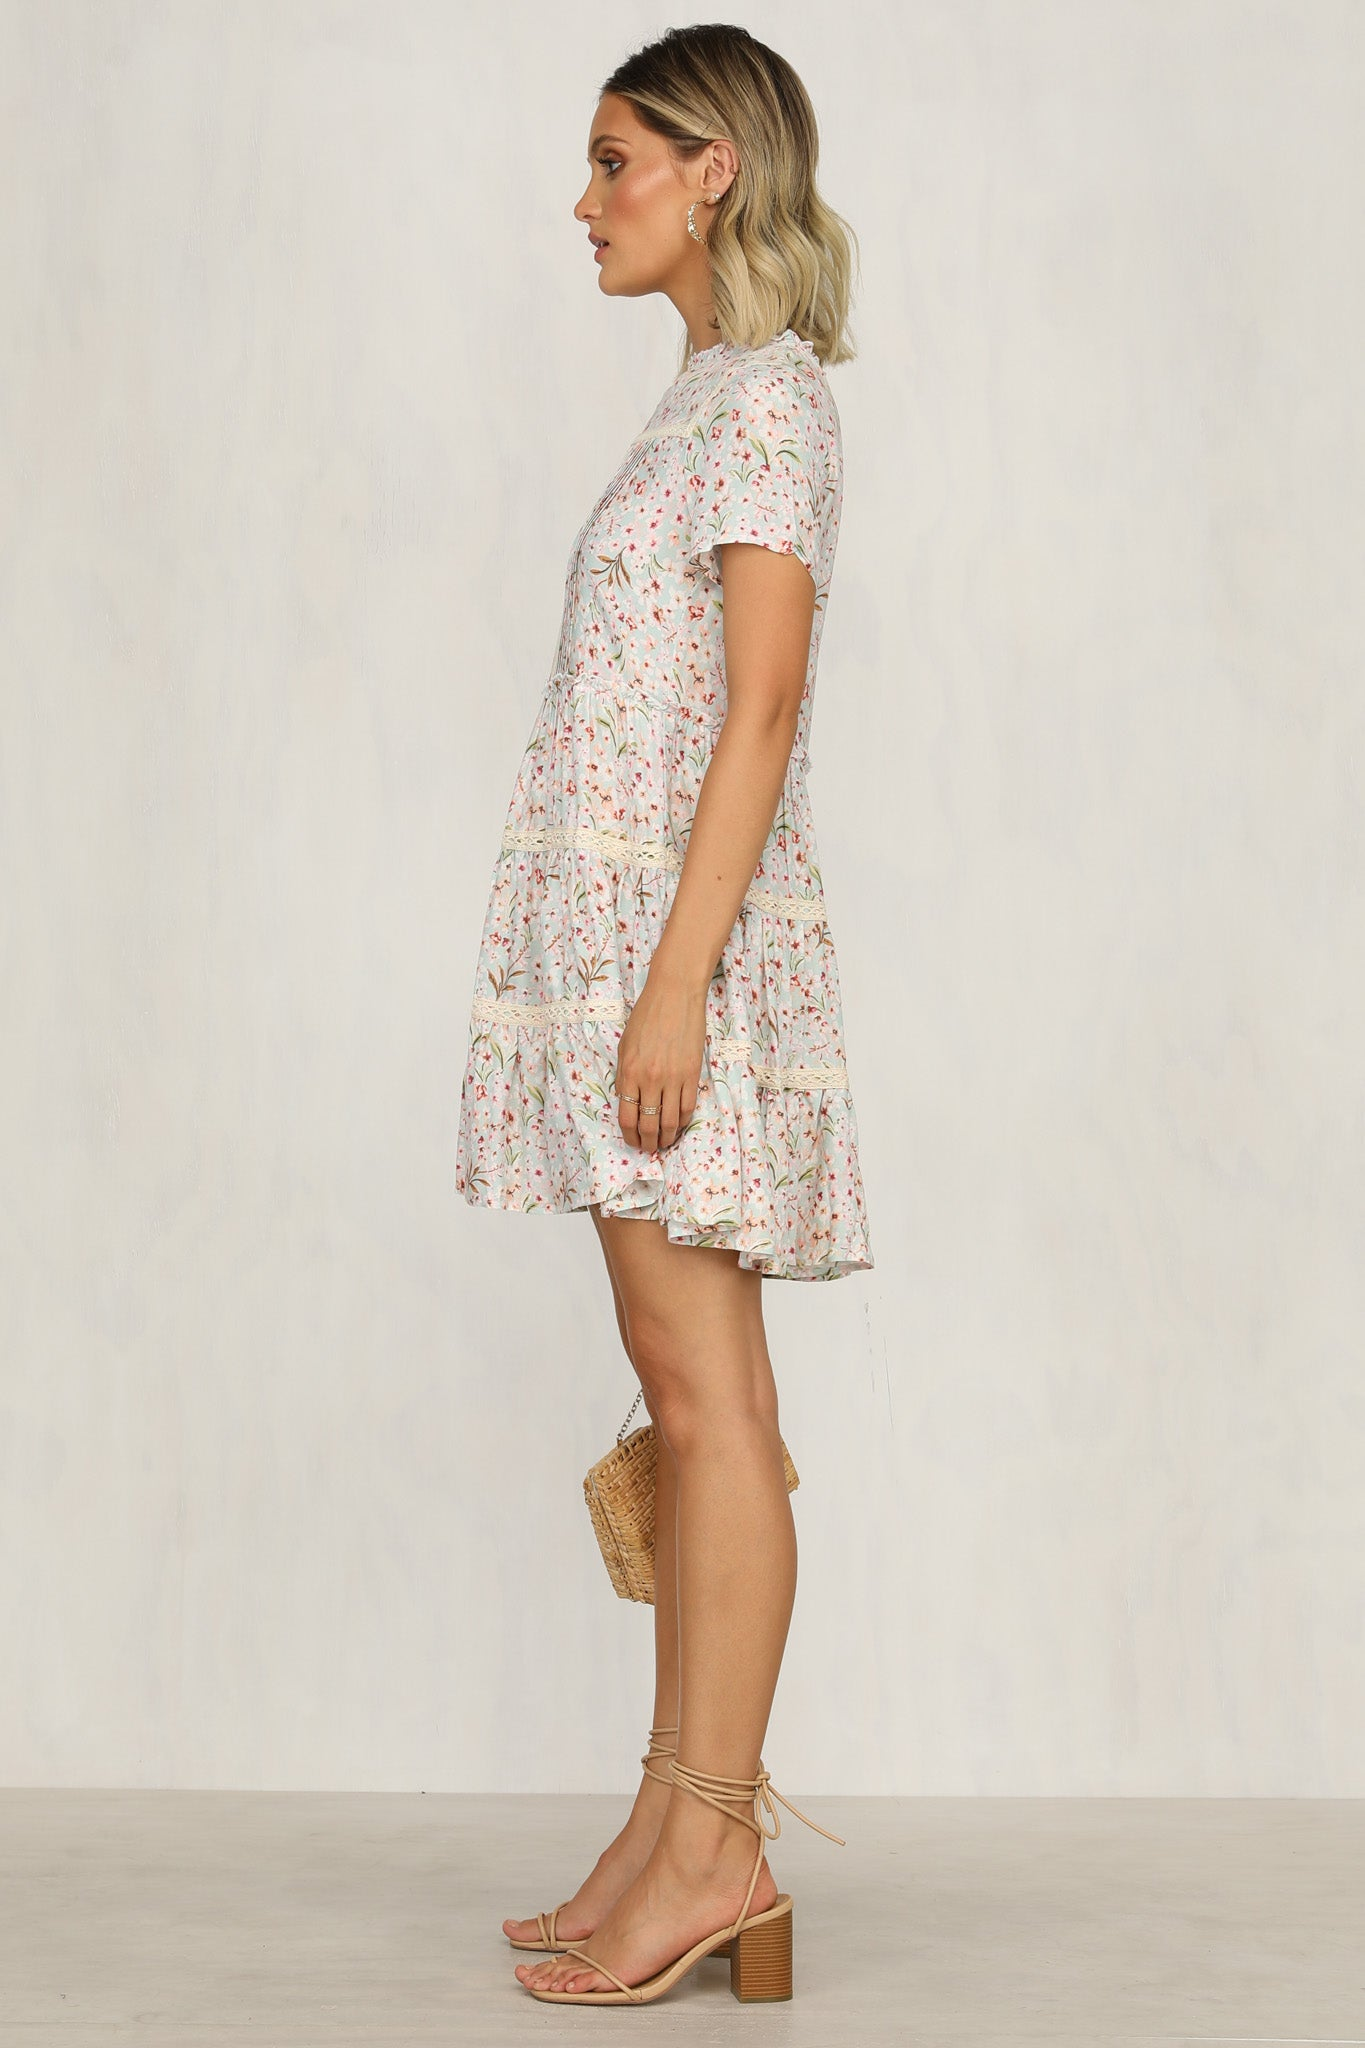 Make It A Date Dress (Blue Floral)